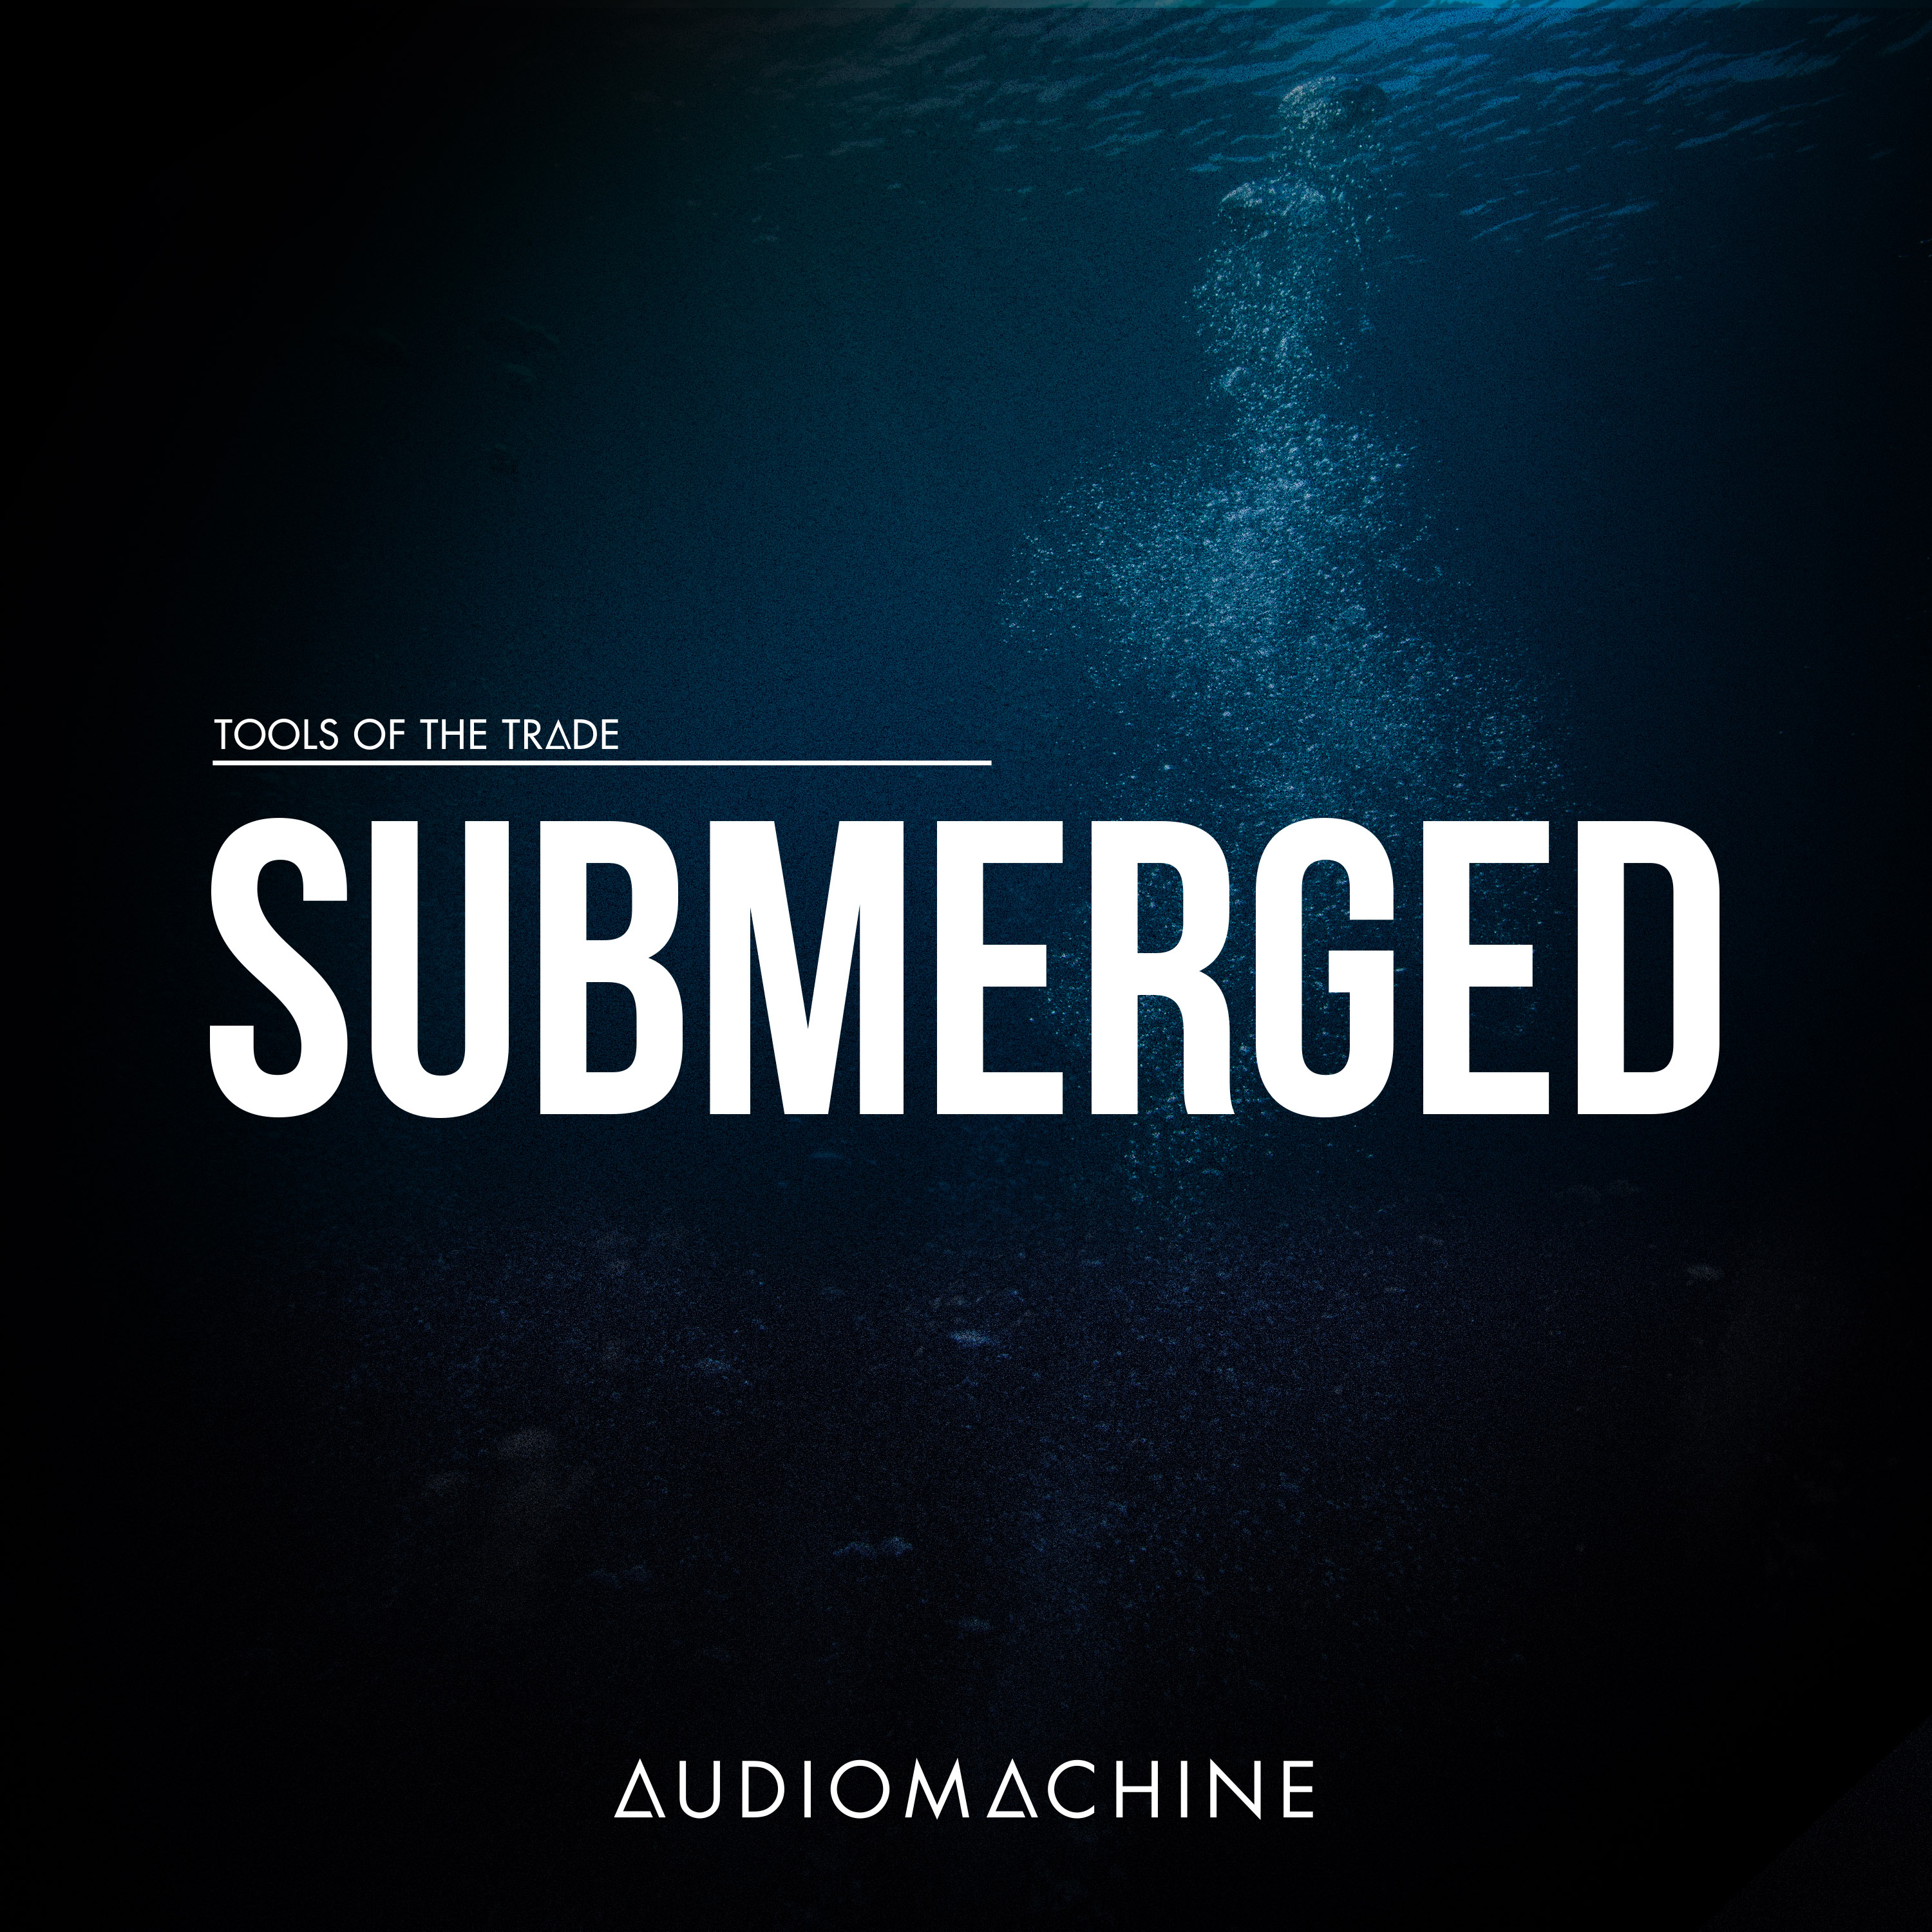 Tools of the Trade: Submerged